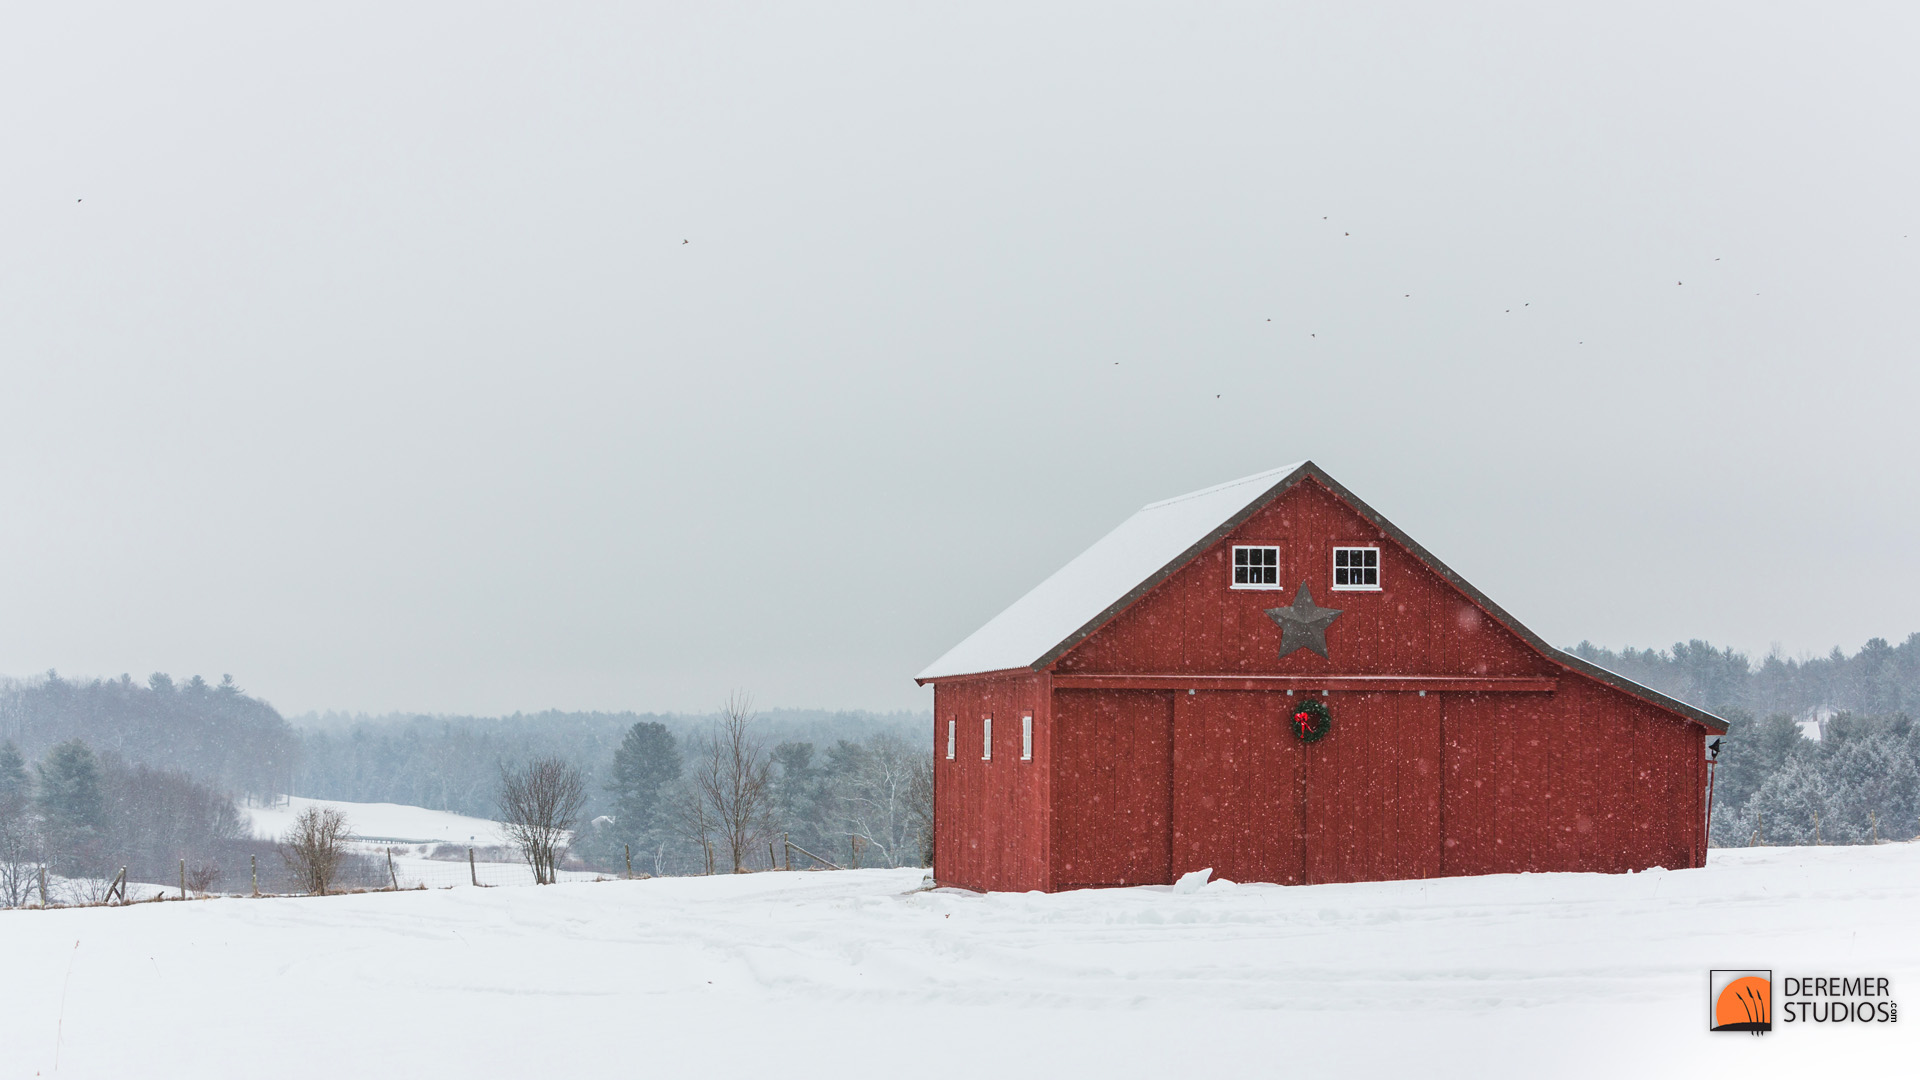 Falling Snow Wallpaper Widescreen Up North Fine Art Shoots From North Of Fl A Snowy